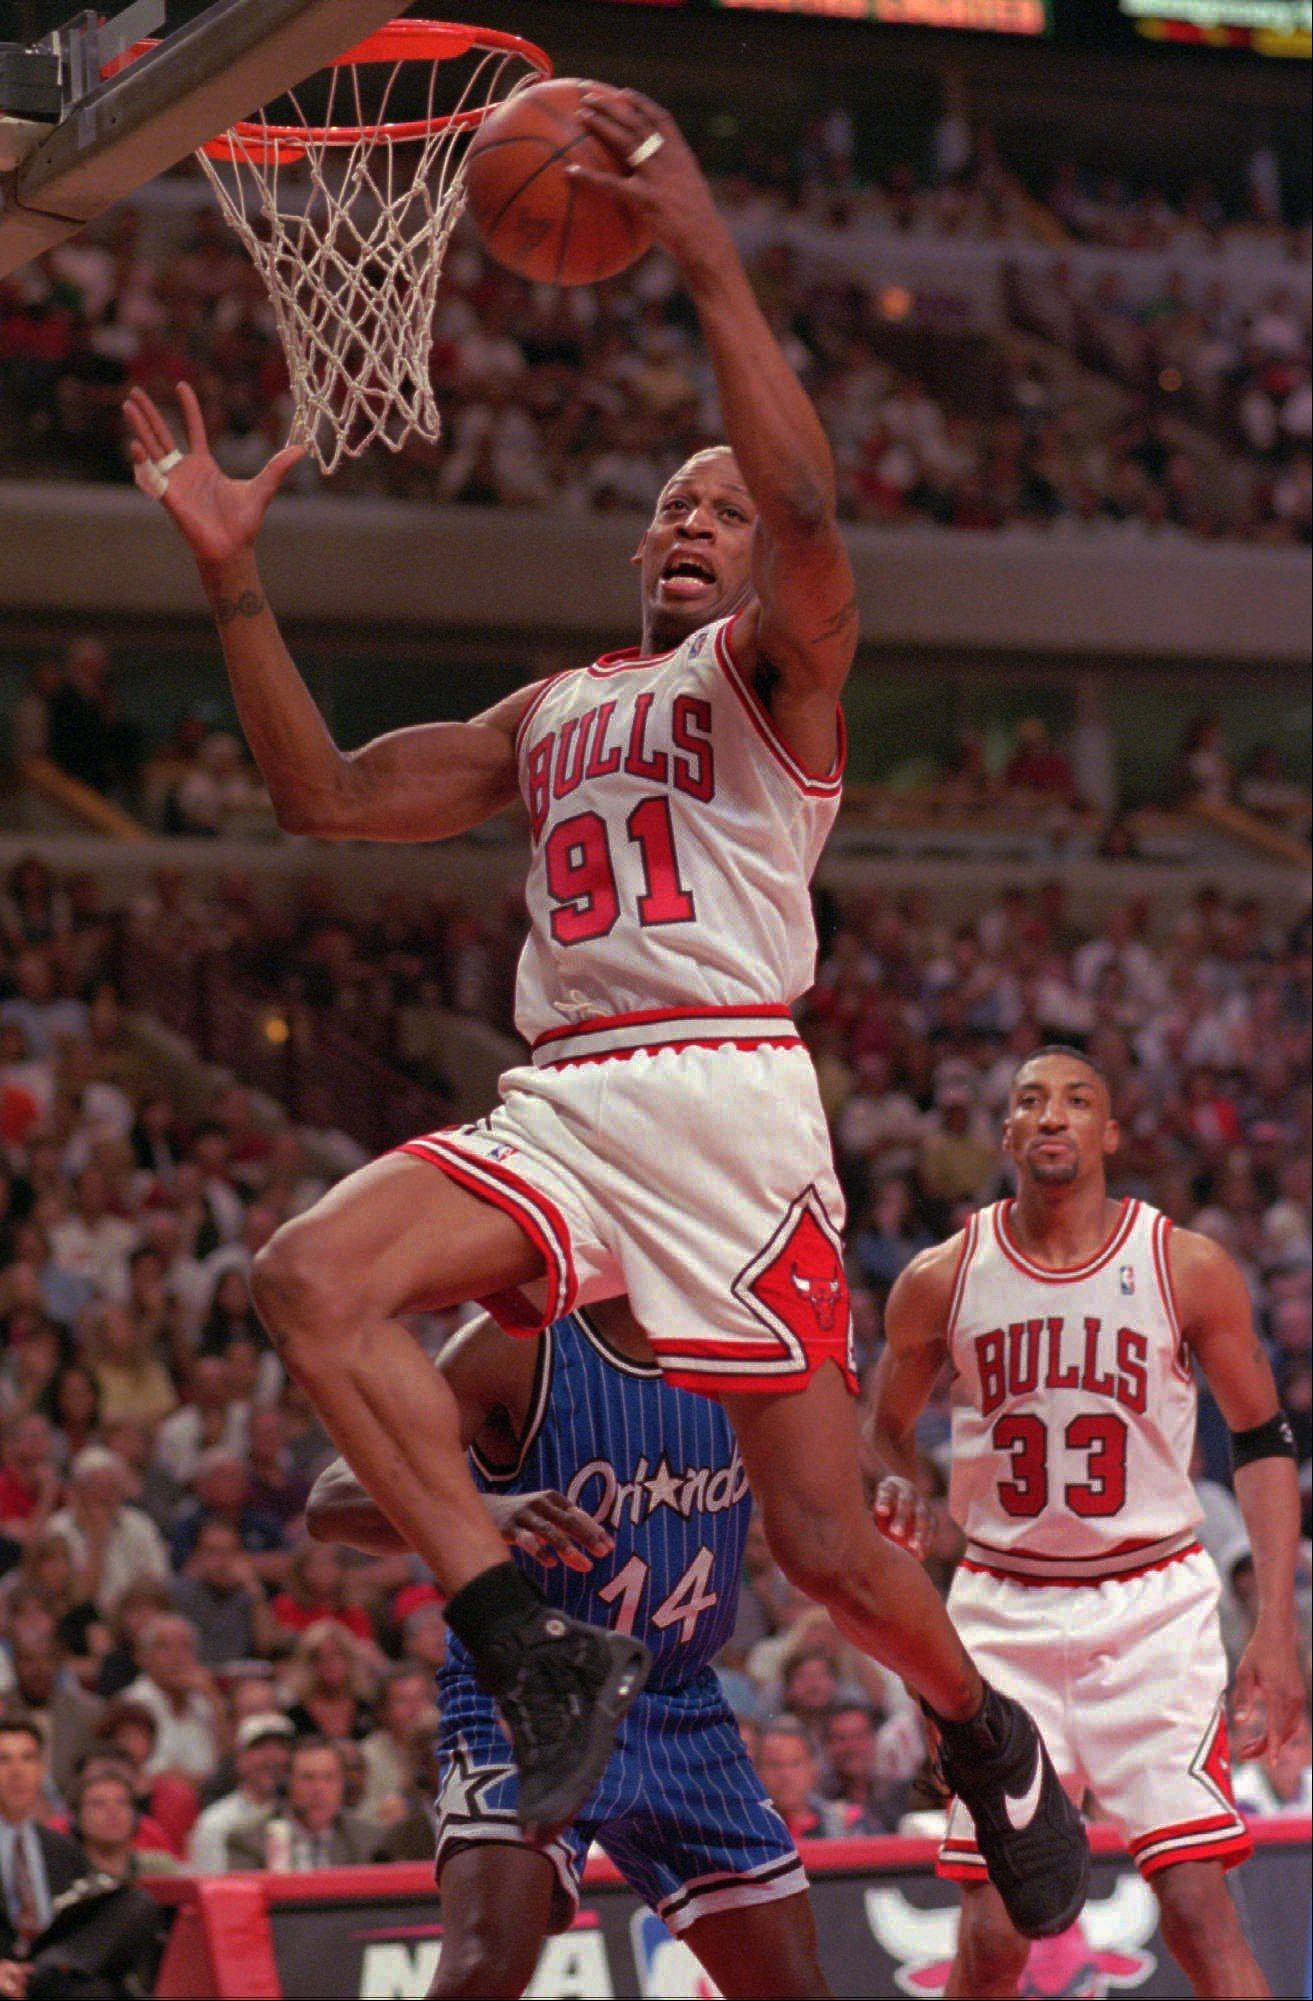 Chicago Bulls' forward Dennis Rodman (91) grabbing one of his 21 rebounds during the fourth quarter of Game 1 of the NBA Eastern Conference Finals against the Orlando Magic.